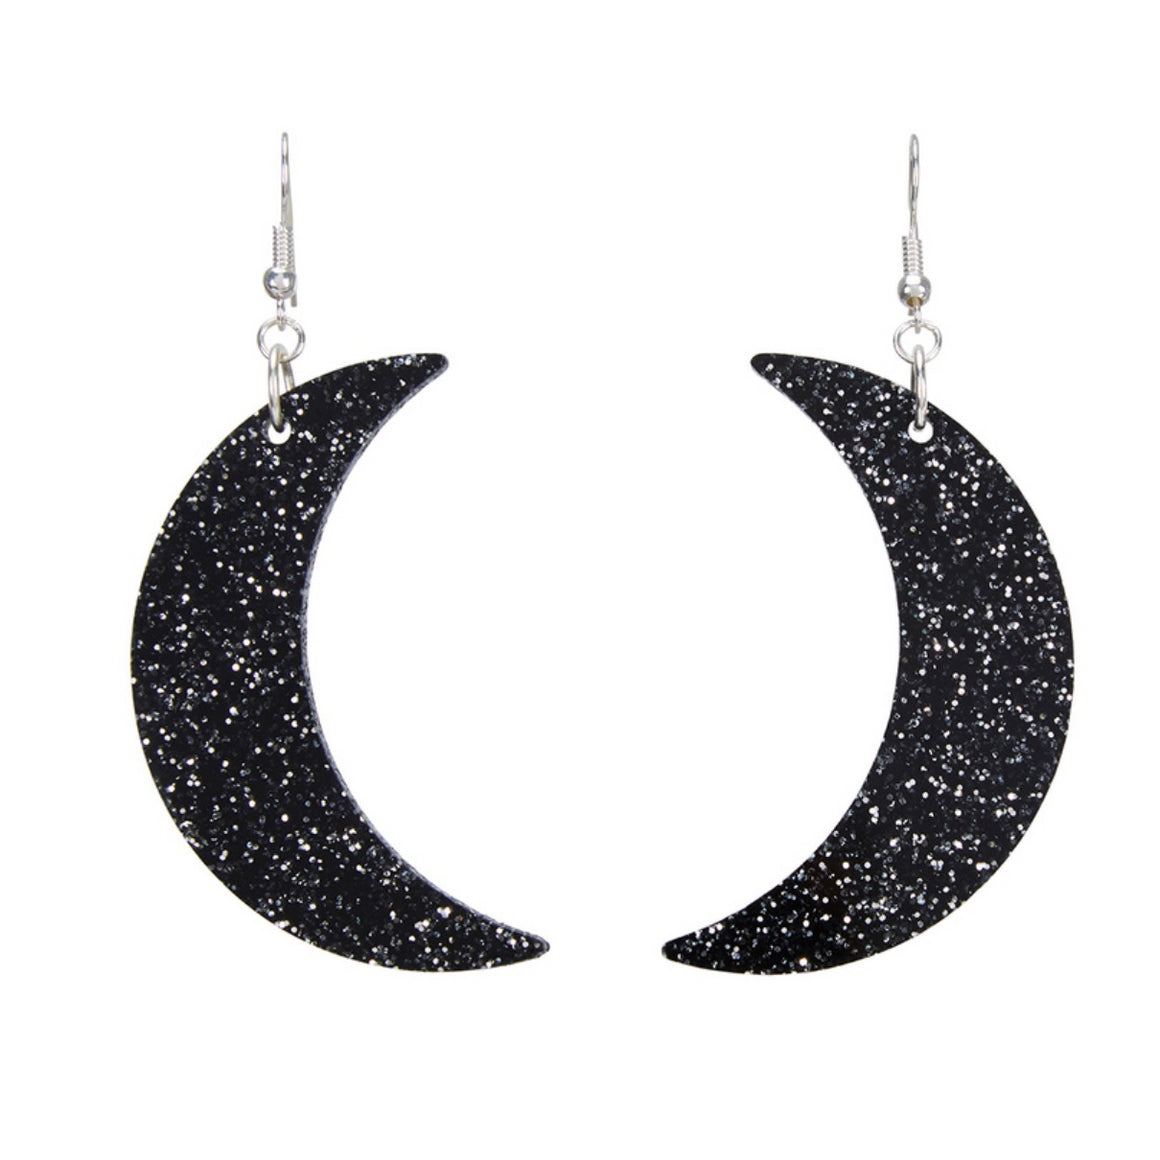 Glitter Moon Black Earrings by Little Moose